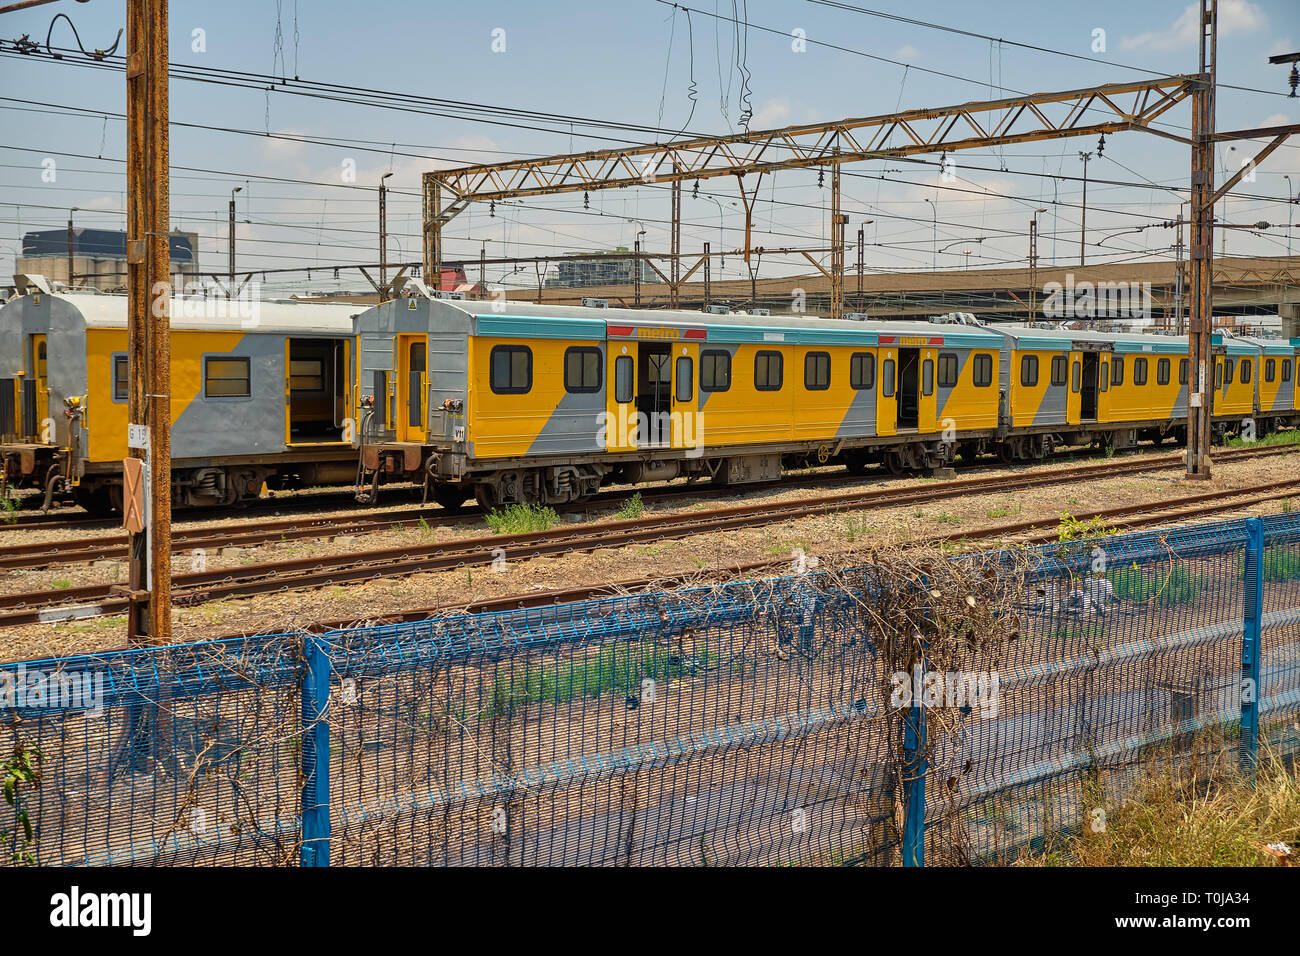 Metrorail train in yard station, in the suburbs of Joburg, South Africa - January 17, 2019 Stock Photo